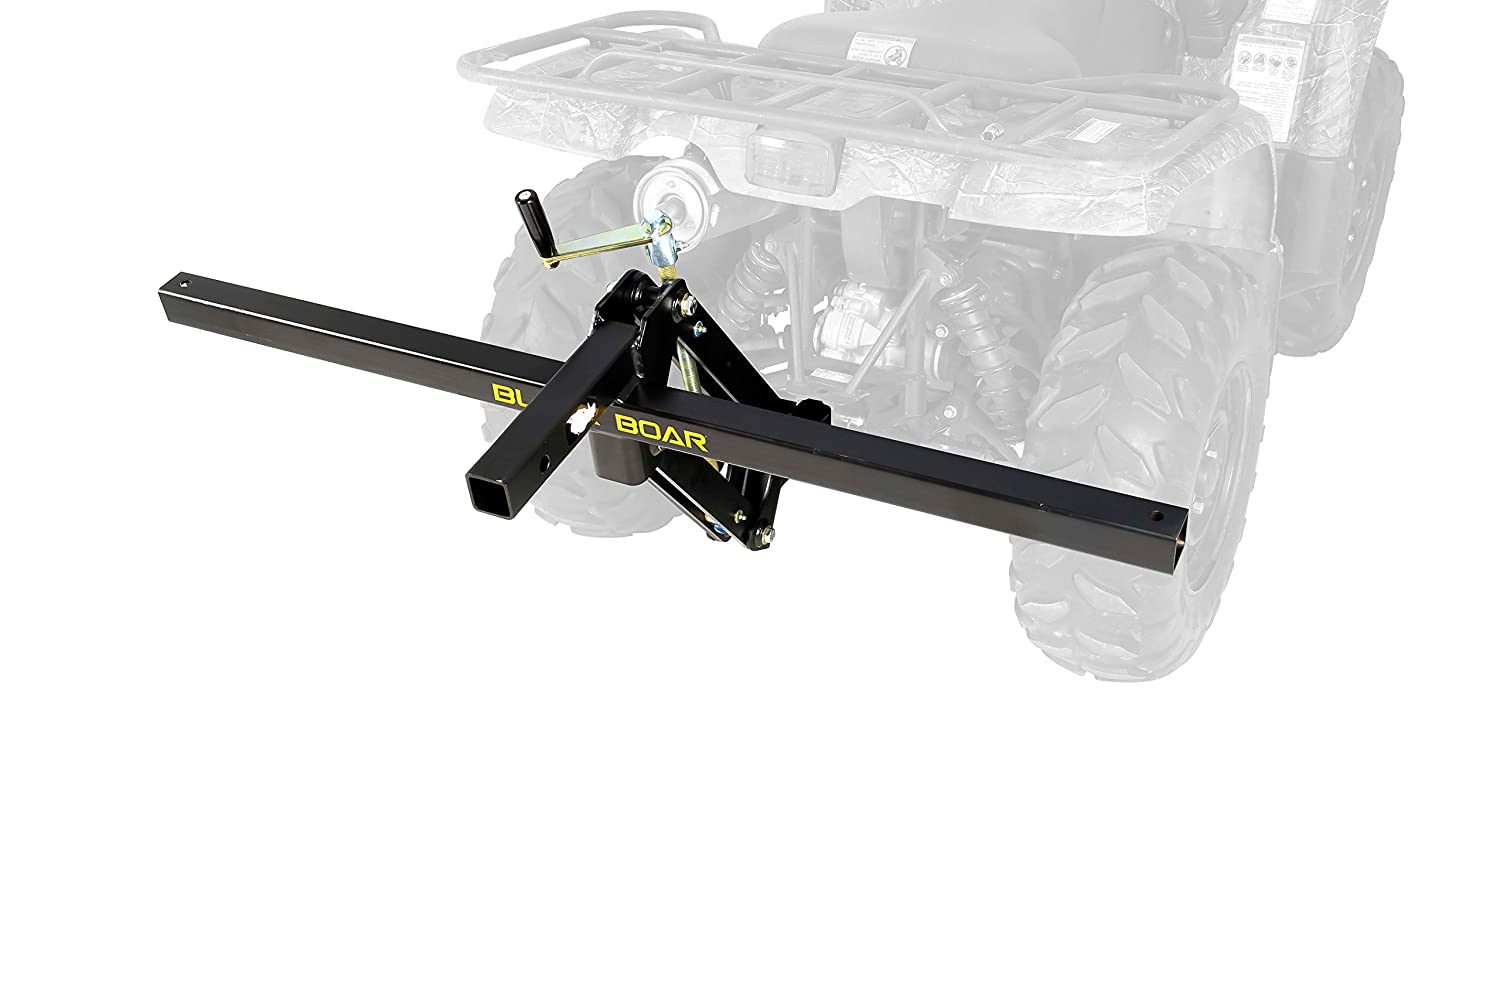 Camco Black Boar ATV/UTV Scrape Blade Implement, Adjusts 0, 7.5 or 15 Degrees in Either Direction 66005